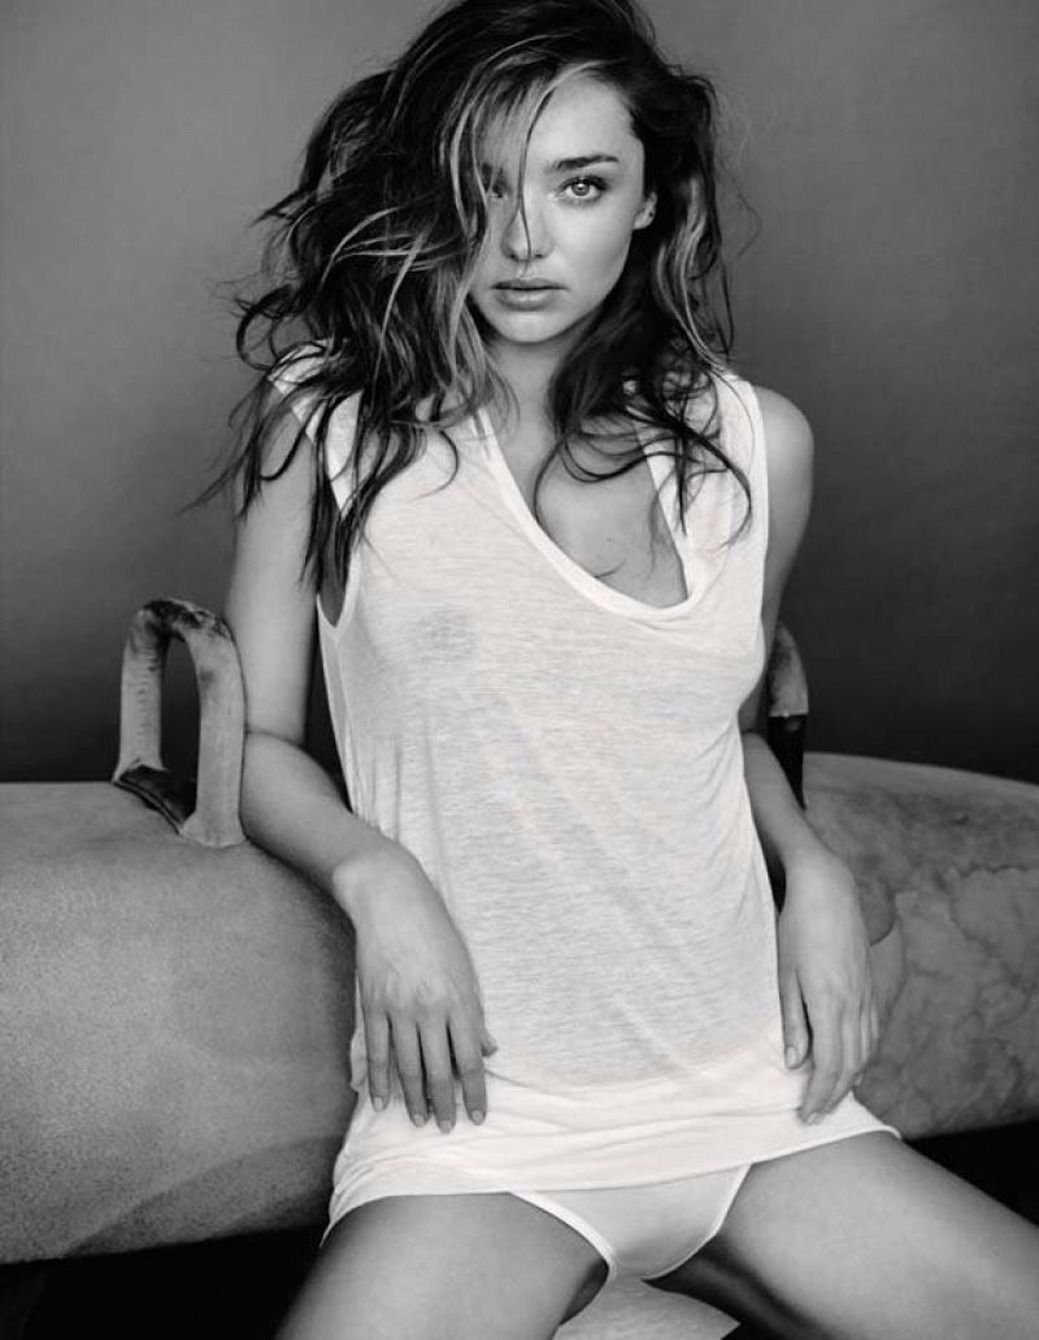 Miranda Kerr Model Art 32x24 Poster Decor